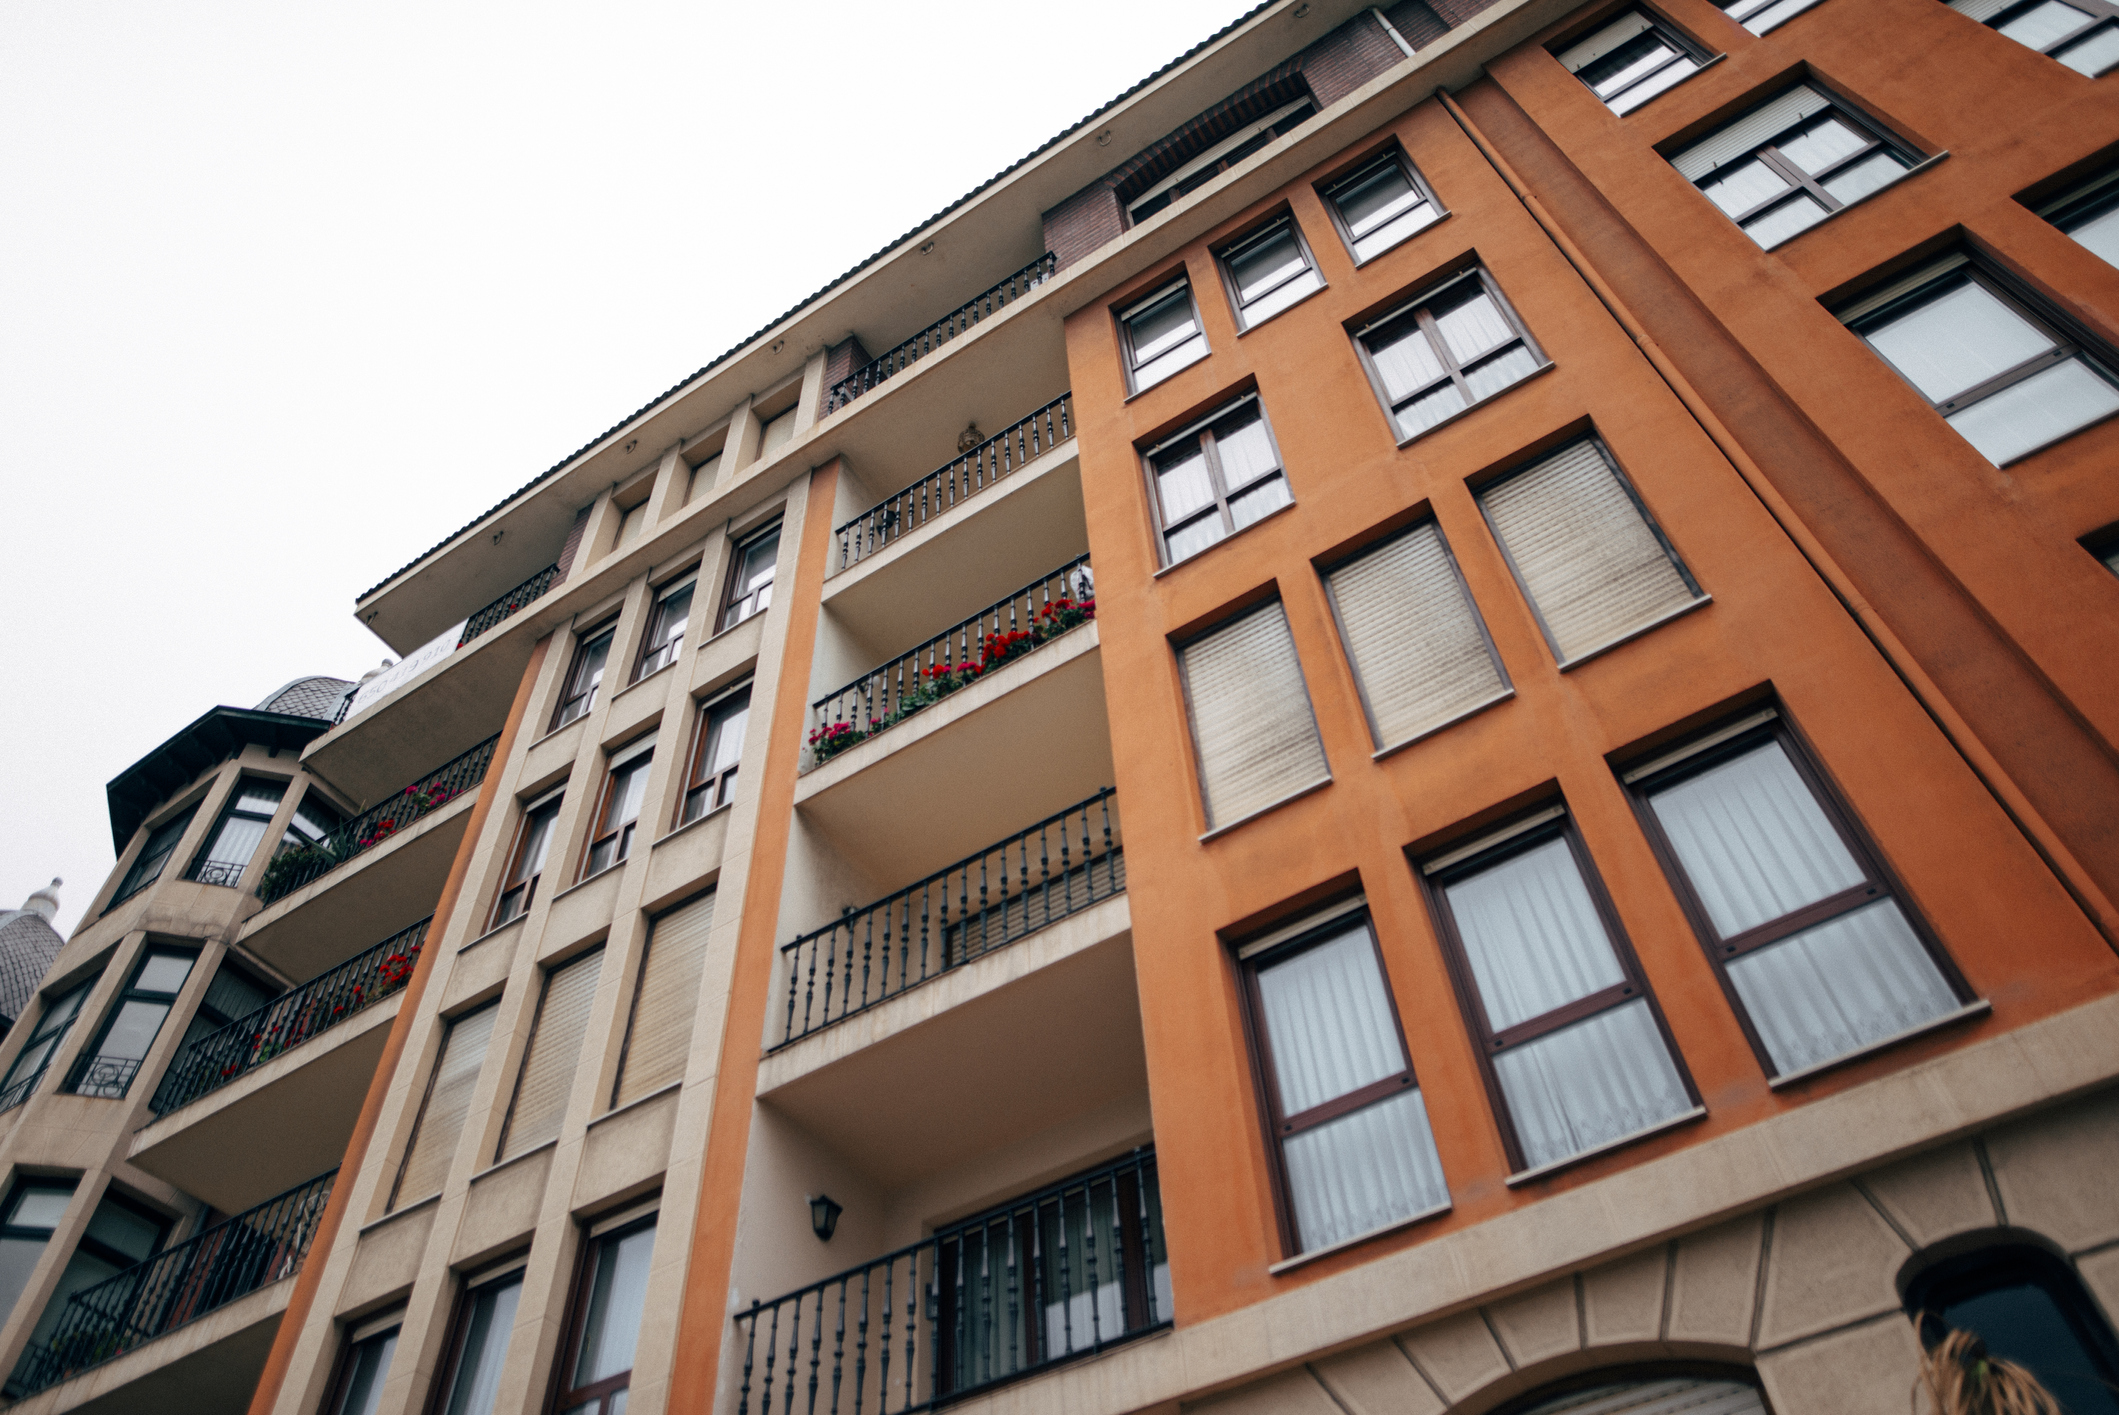 A five-story apartment building shot from the ground. It has two columns with windows separated by a balcony on each floor.